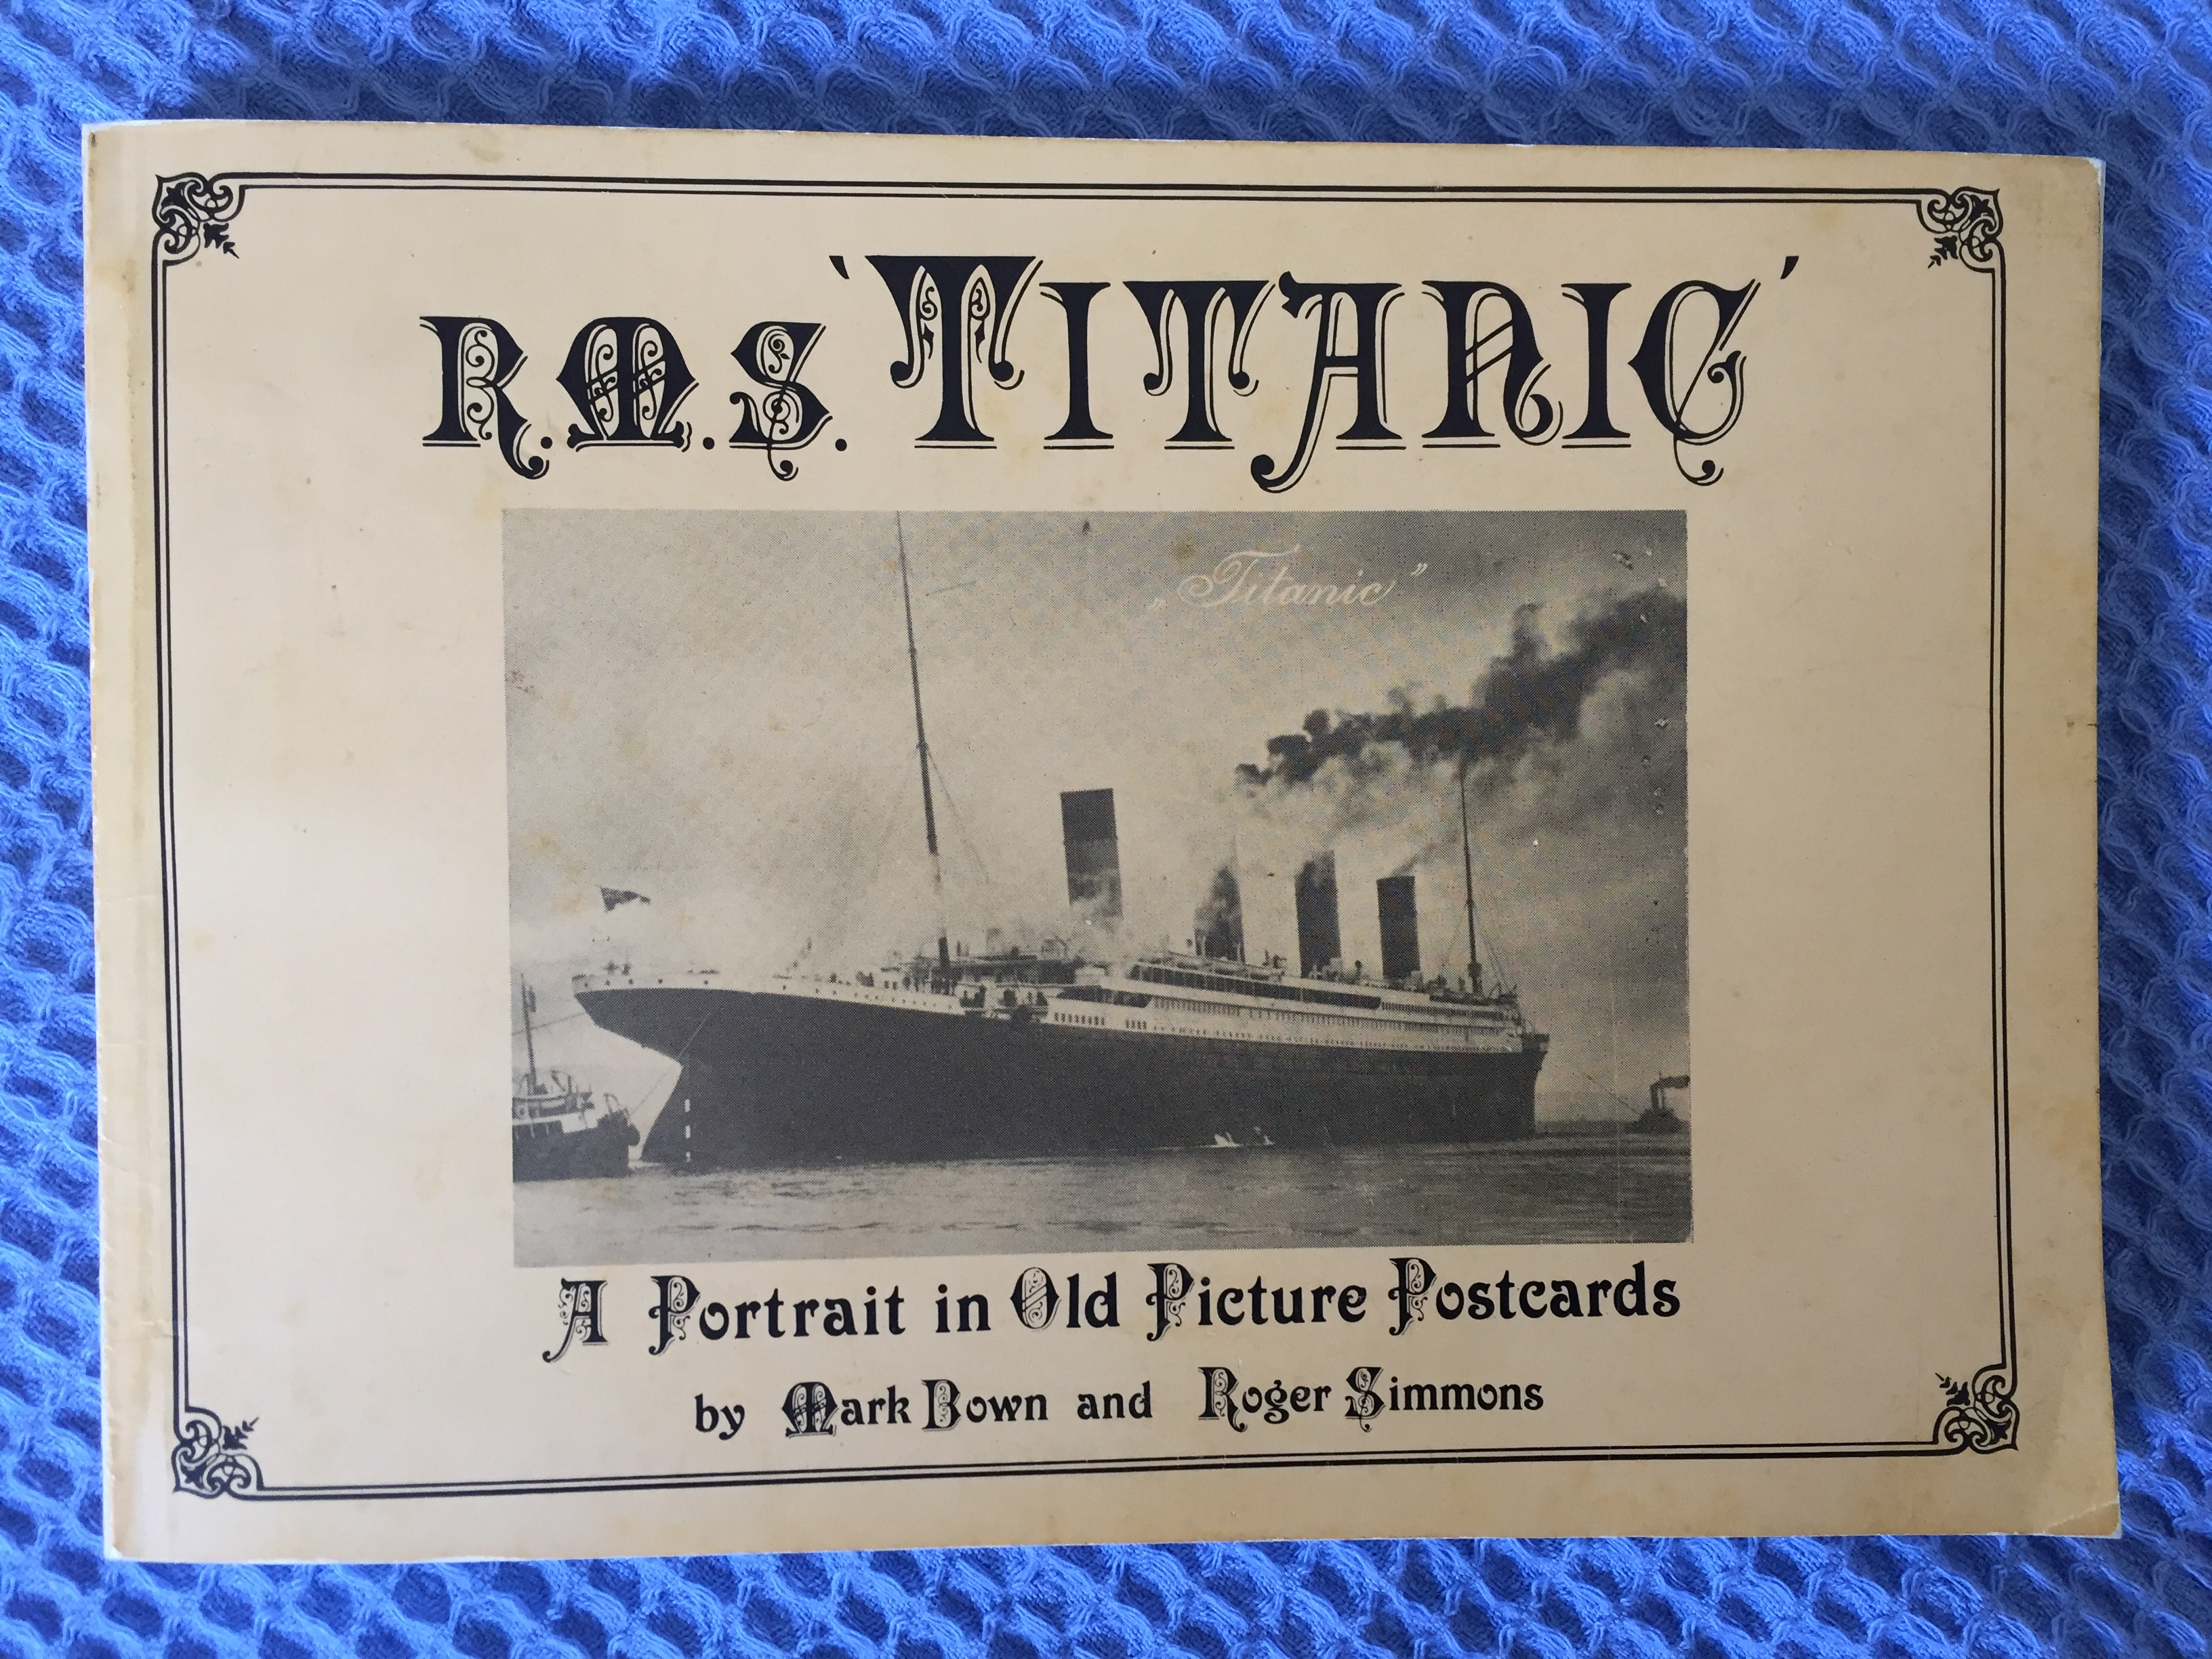 FANTASTIC BOOKLET OF MANY TYPES OF TITANIC POSTCARDS